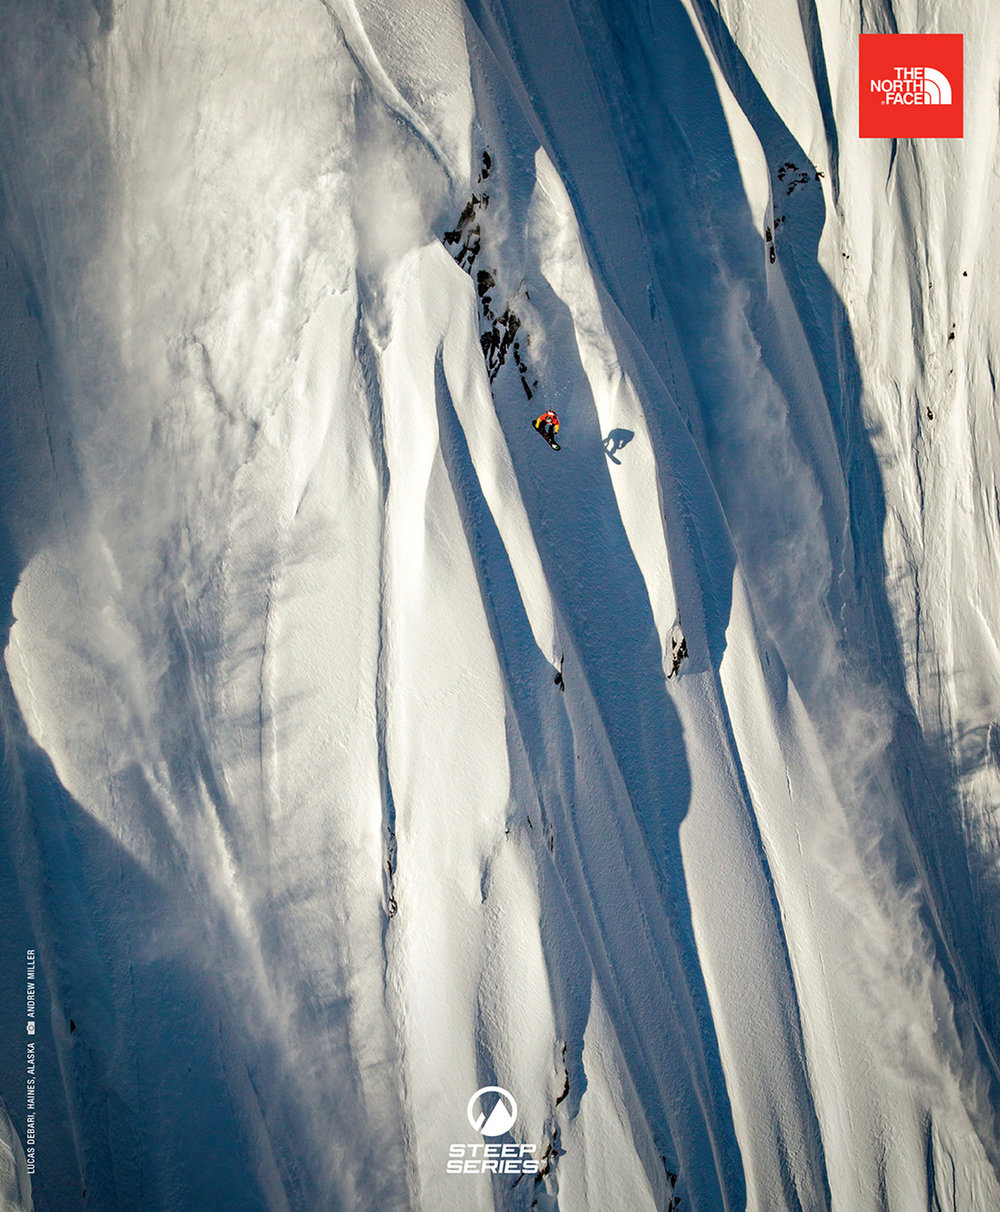 The North Face Steep Series Campaign